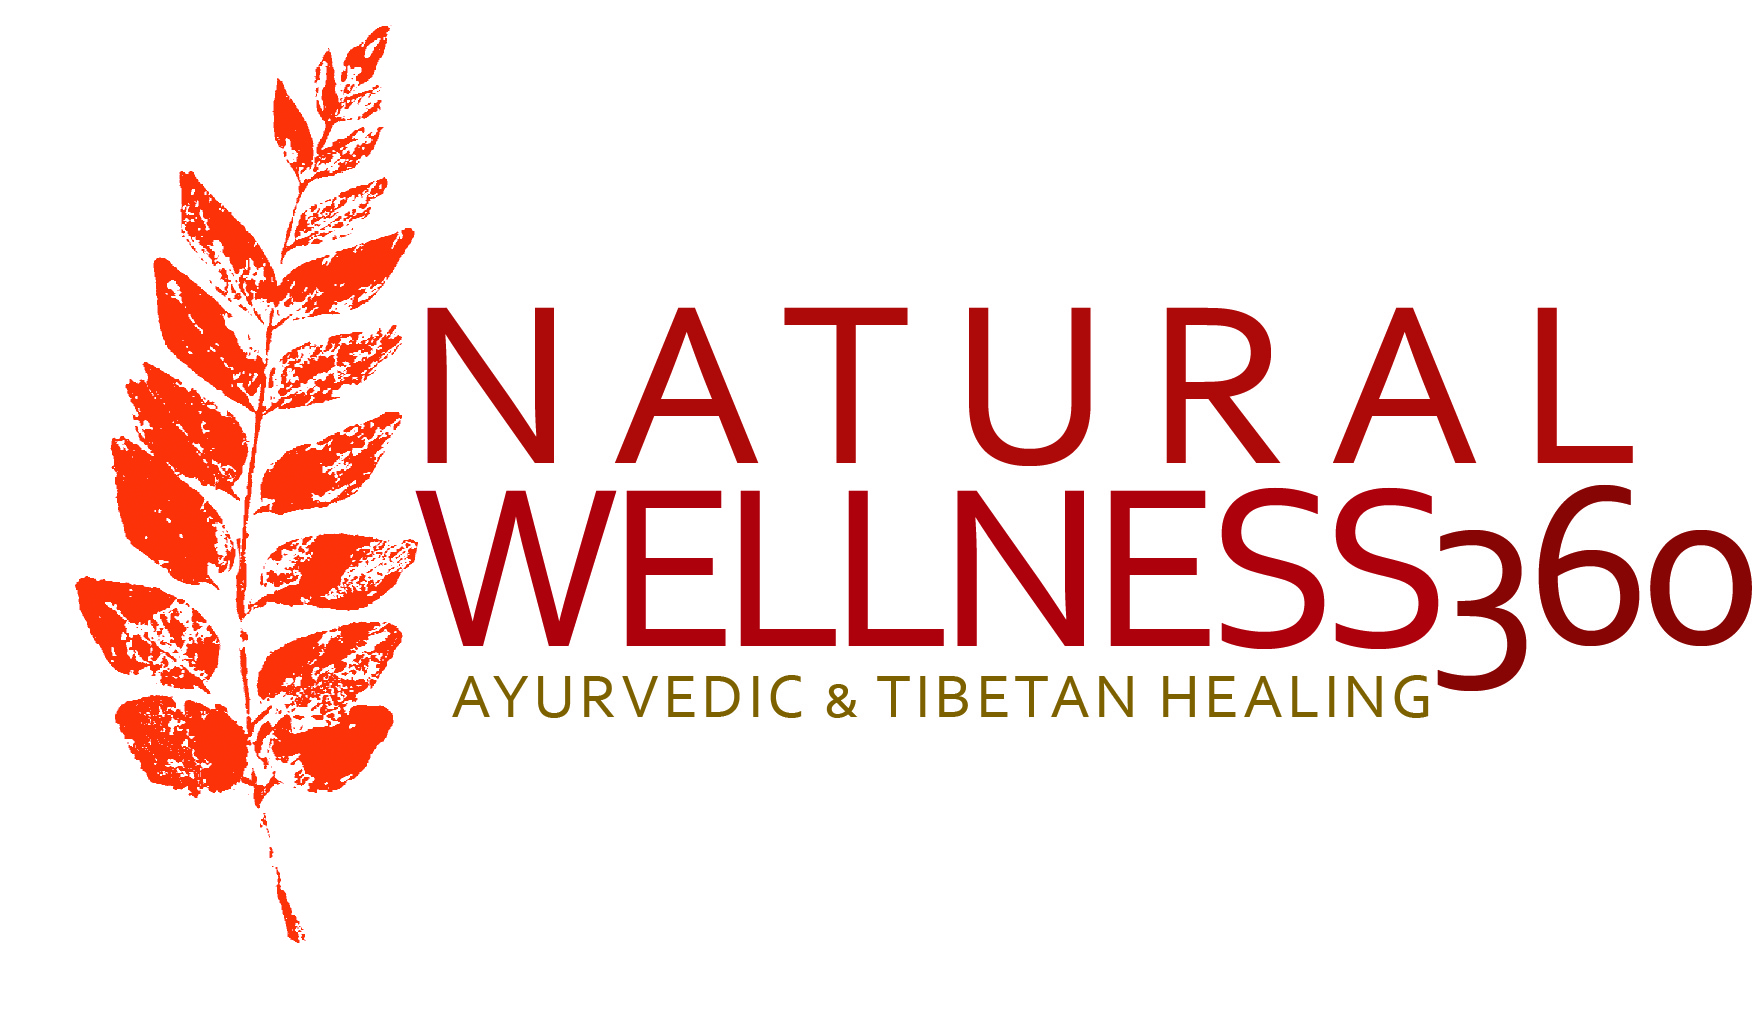 Natural Wellness 360 Ayurvedic and Tibetan Healing